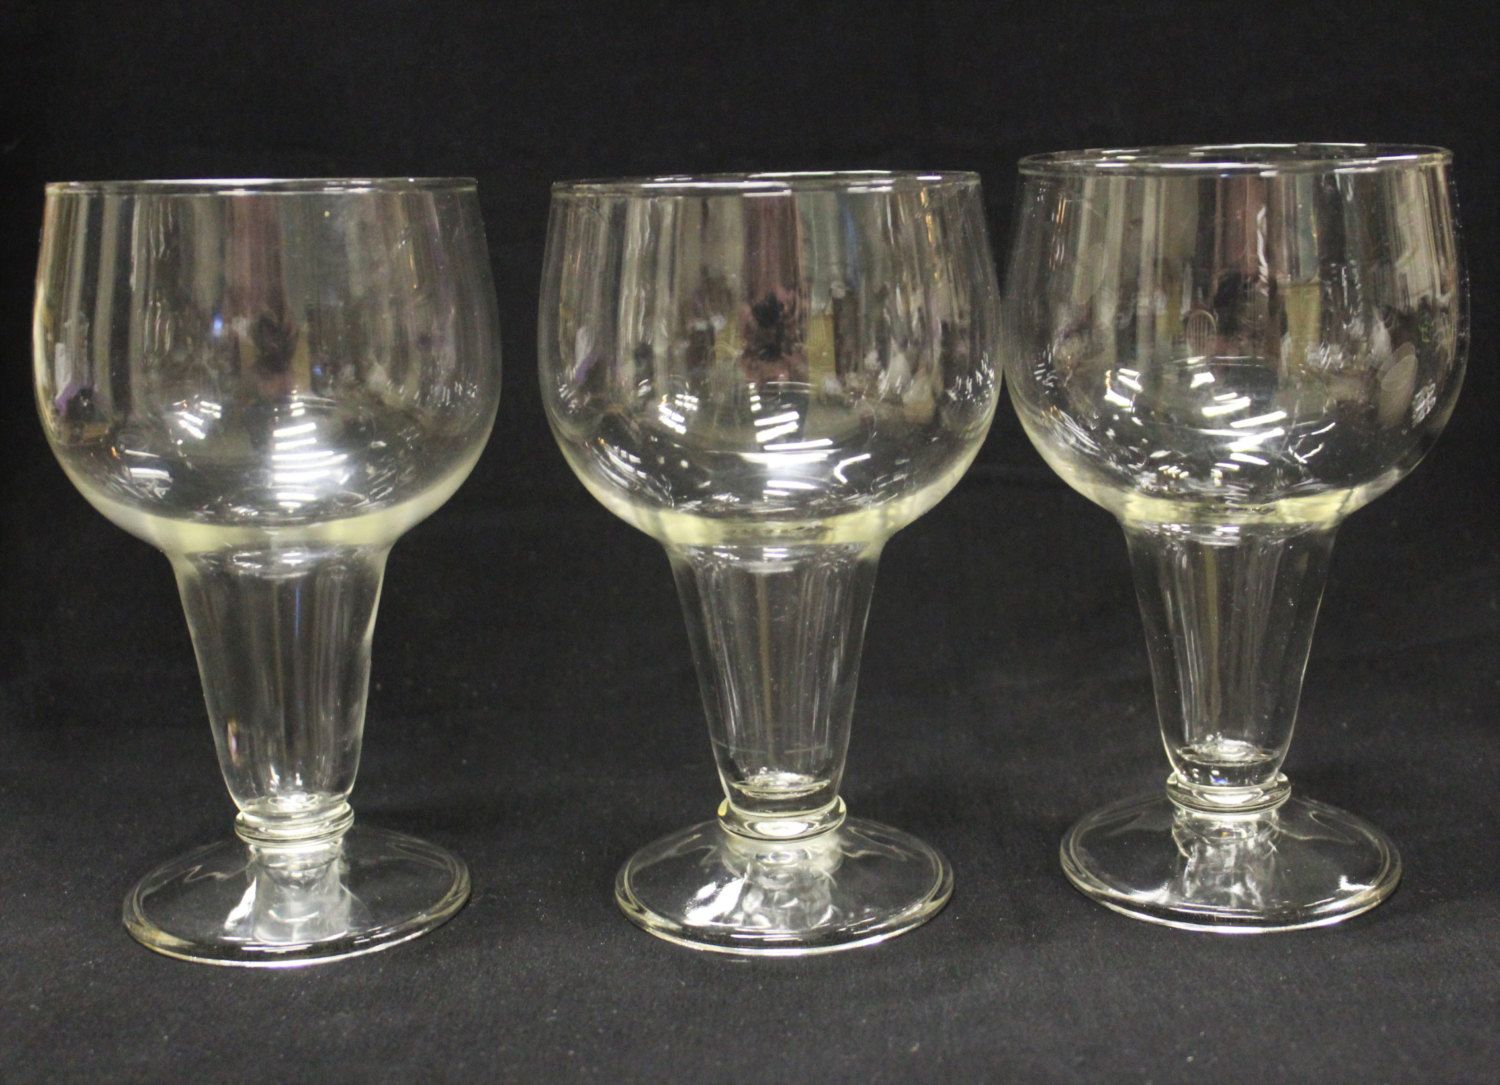 Vintage Anchor Hocking Hollow Stem Pilsner Beer Glasses, Mid Century  Collectilbe Barware, Set Of 3 Cocktail, Wine, Or Beer Glasses